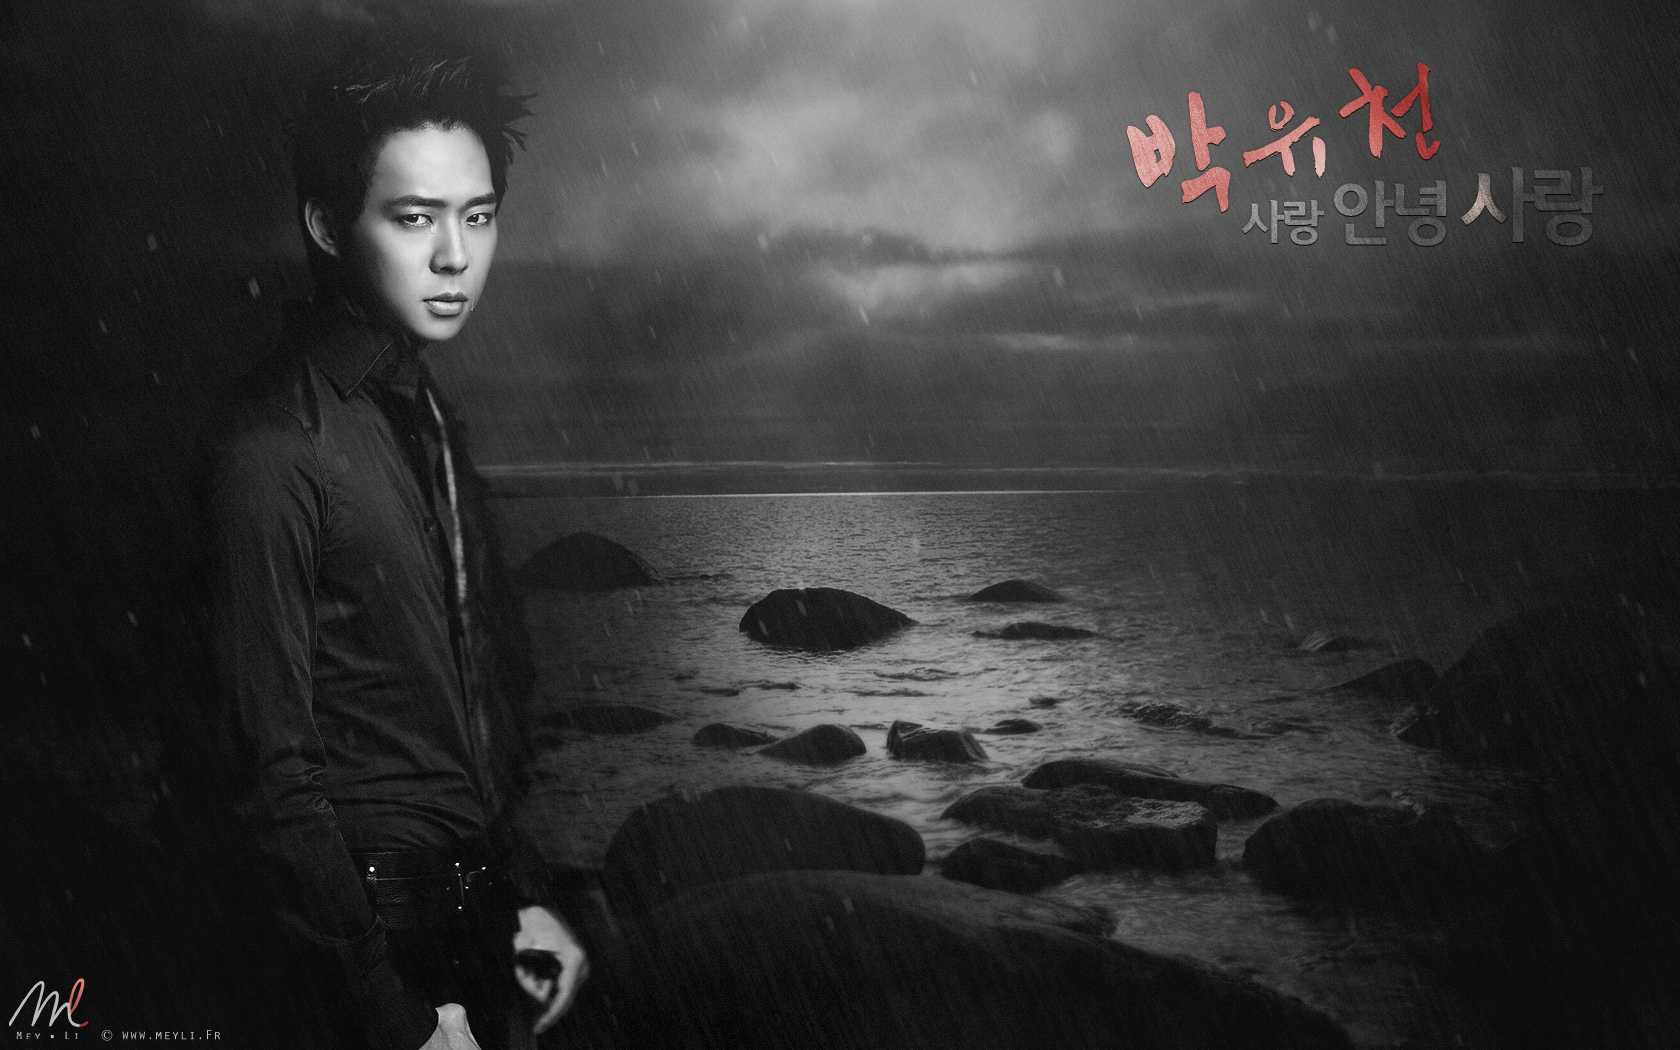 Micky Yoochun 6 -1680x1050-